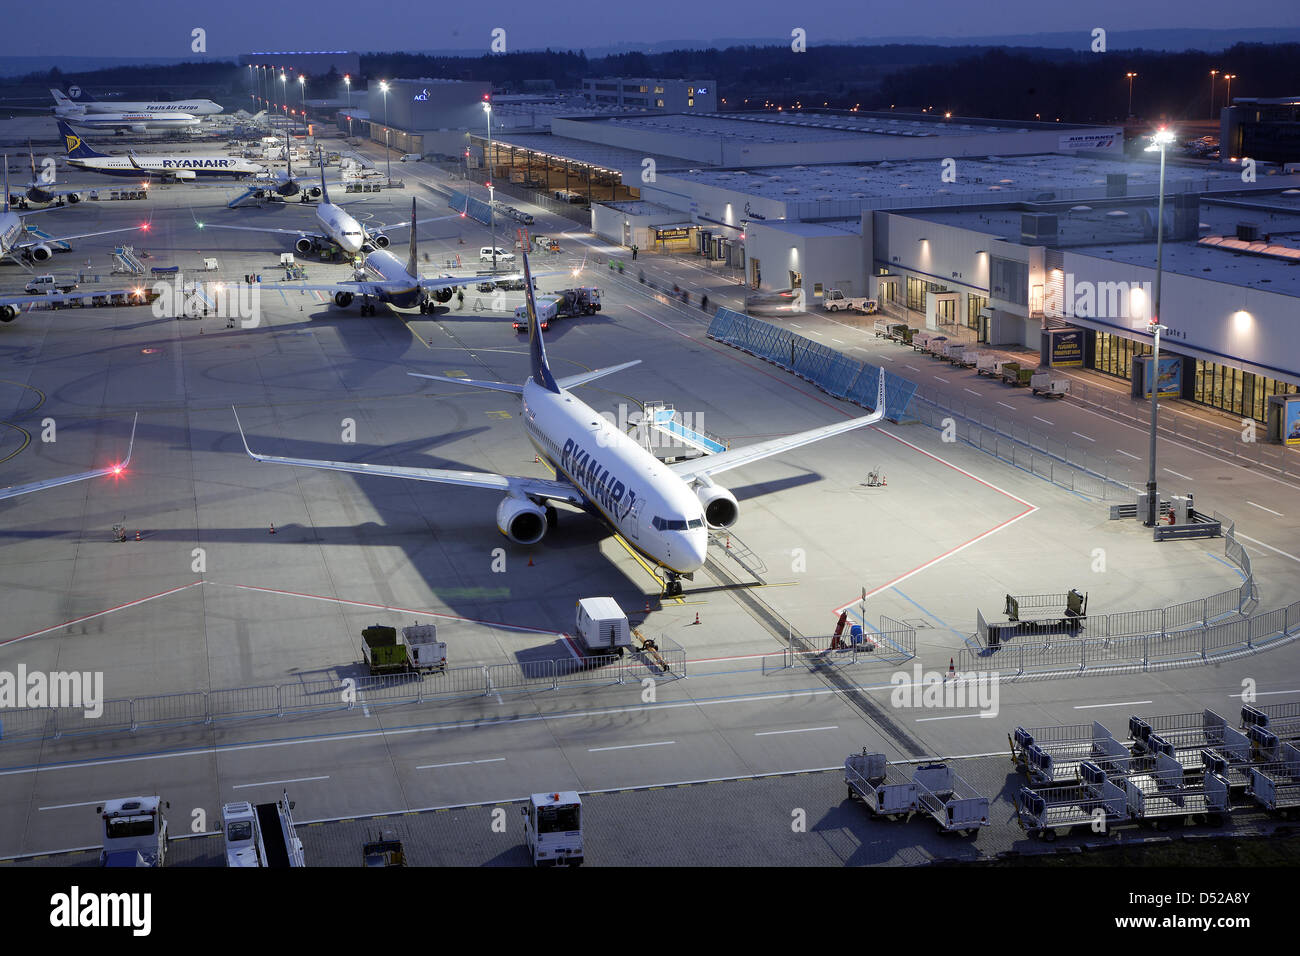 A file picture dated 22 April 2008 shows a plane owned by the Irish company Ryanair on the airport of Frankfurt - Stock Image